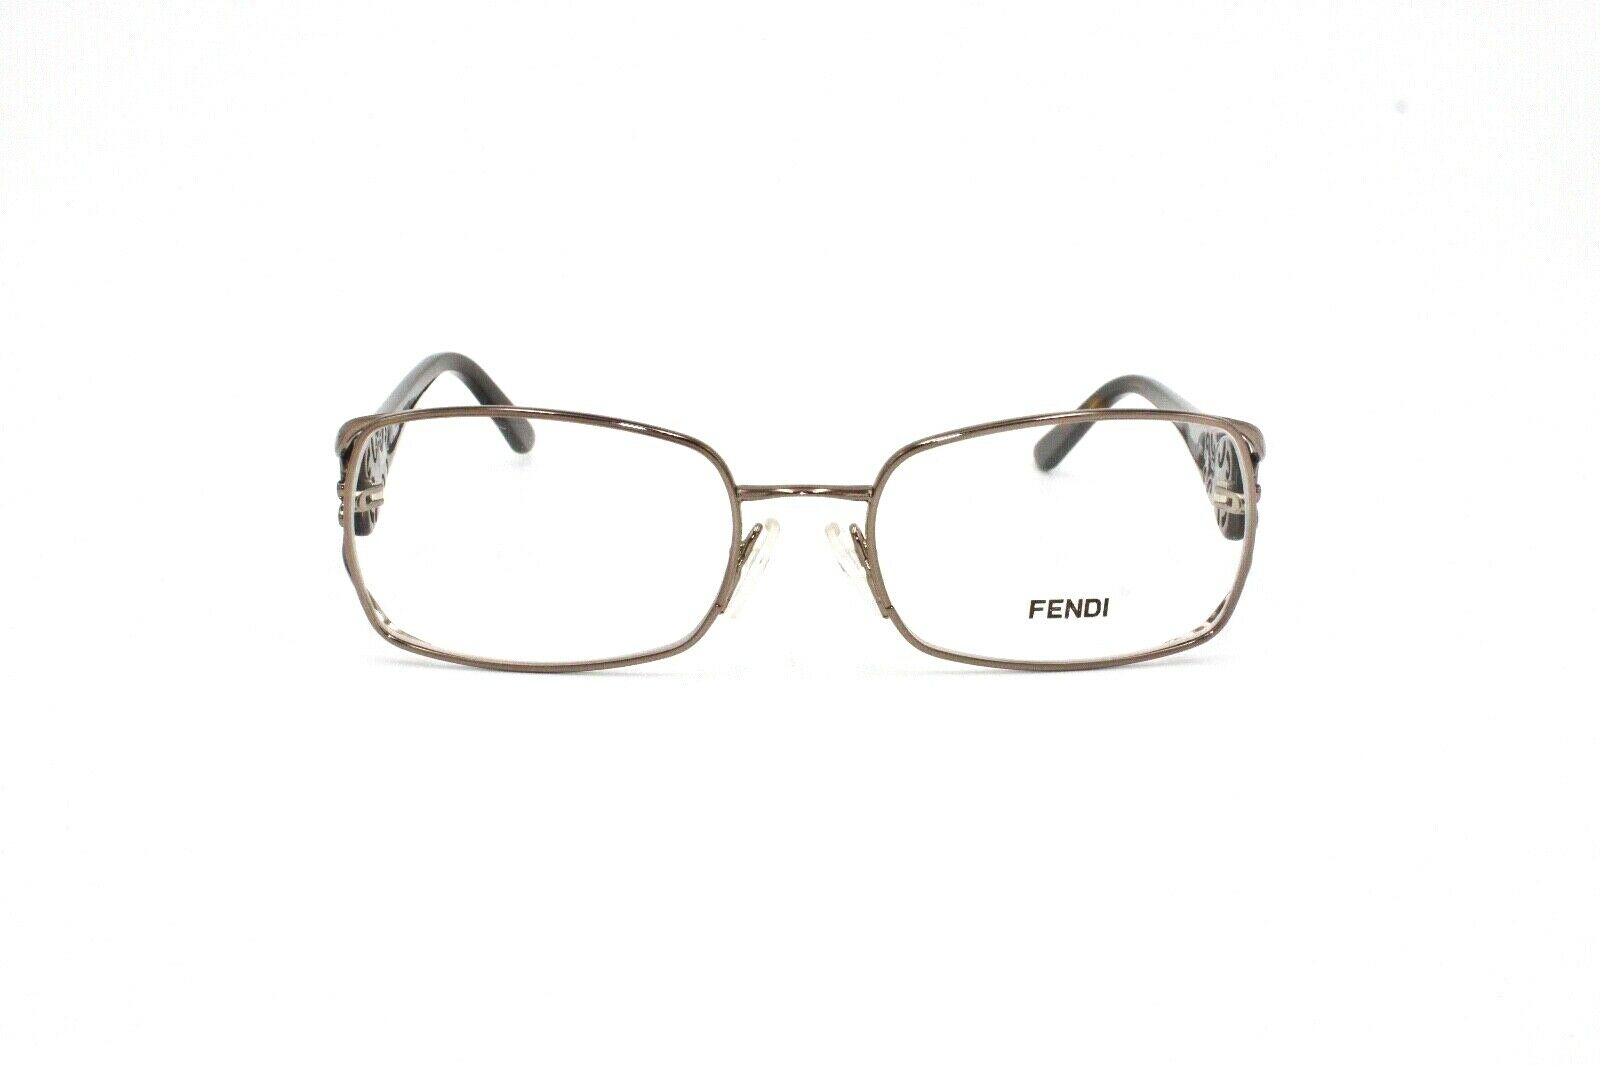 Fendi Eyewear Frame F872 52 17 036 135 Made in Italy - Mydesigneroptic